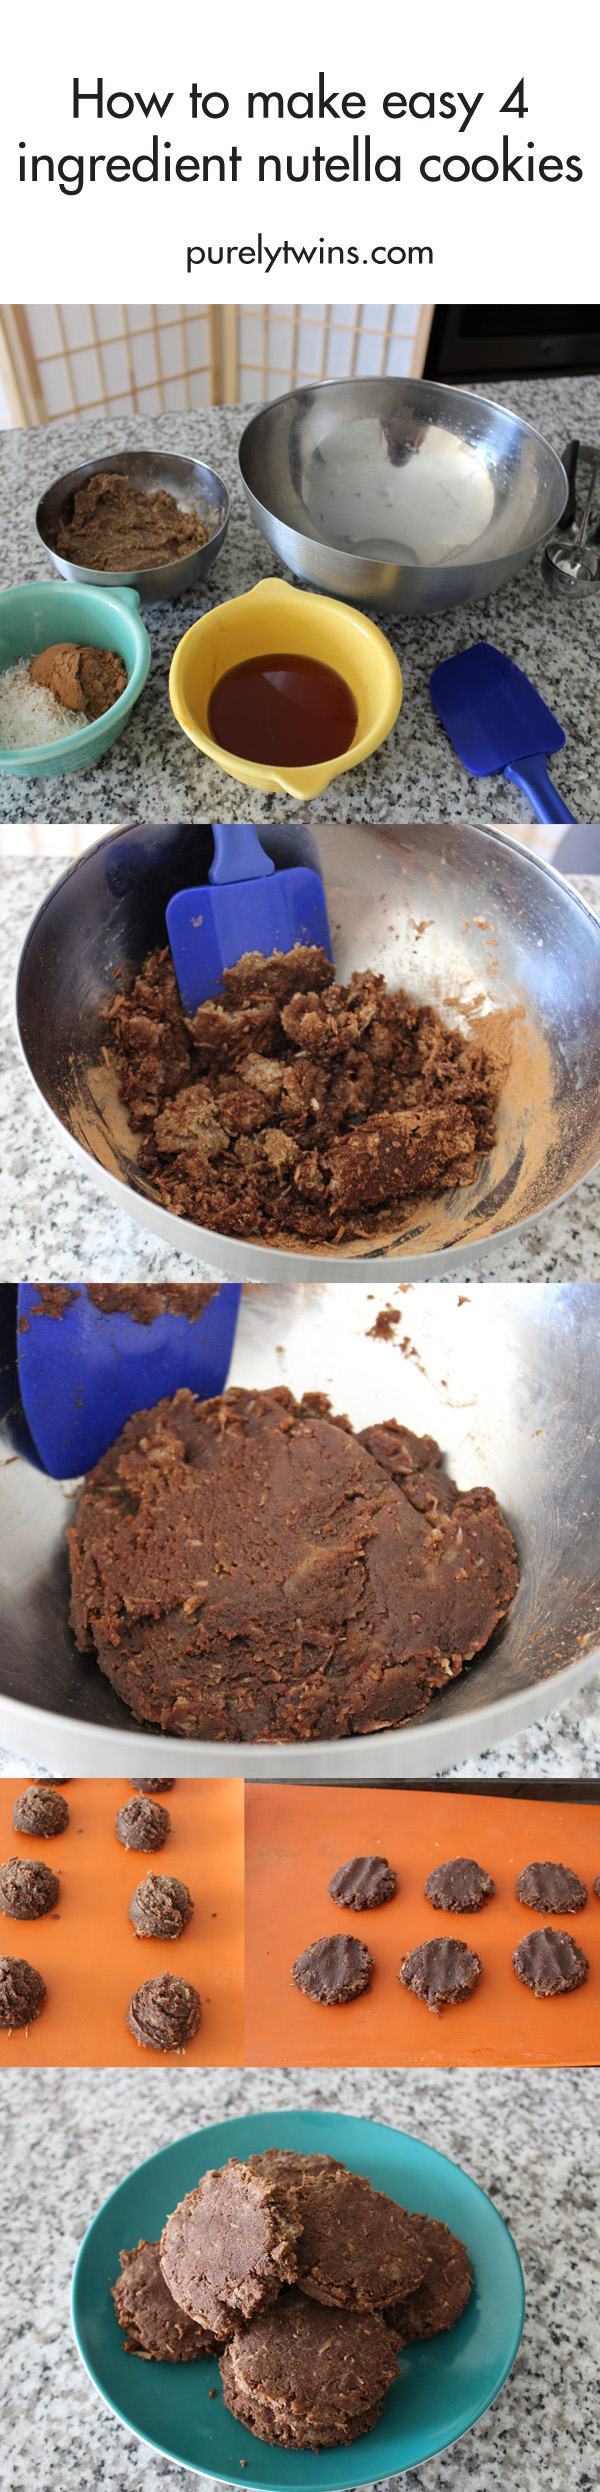 how-to-make-easy-4-ingredient-nutella-cookie-recipe-gluten-free-grain-free-egg-free